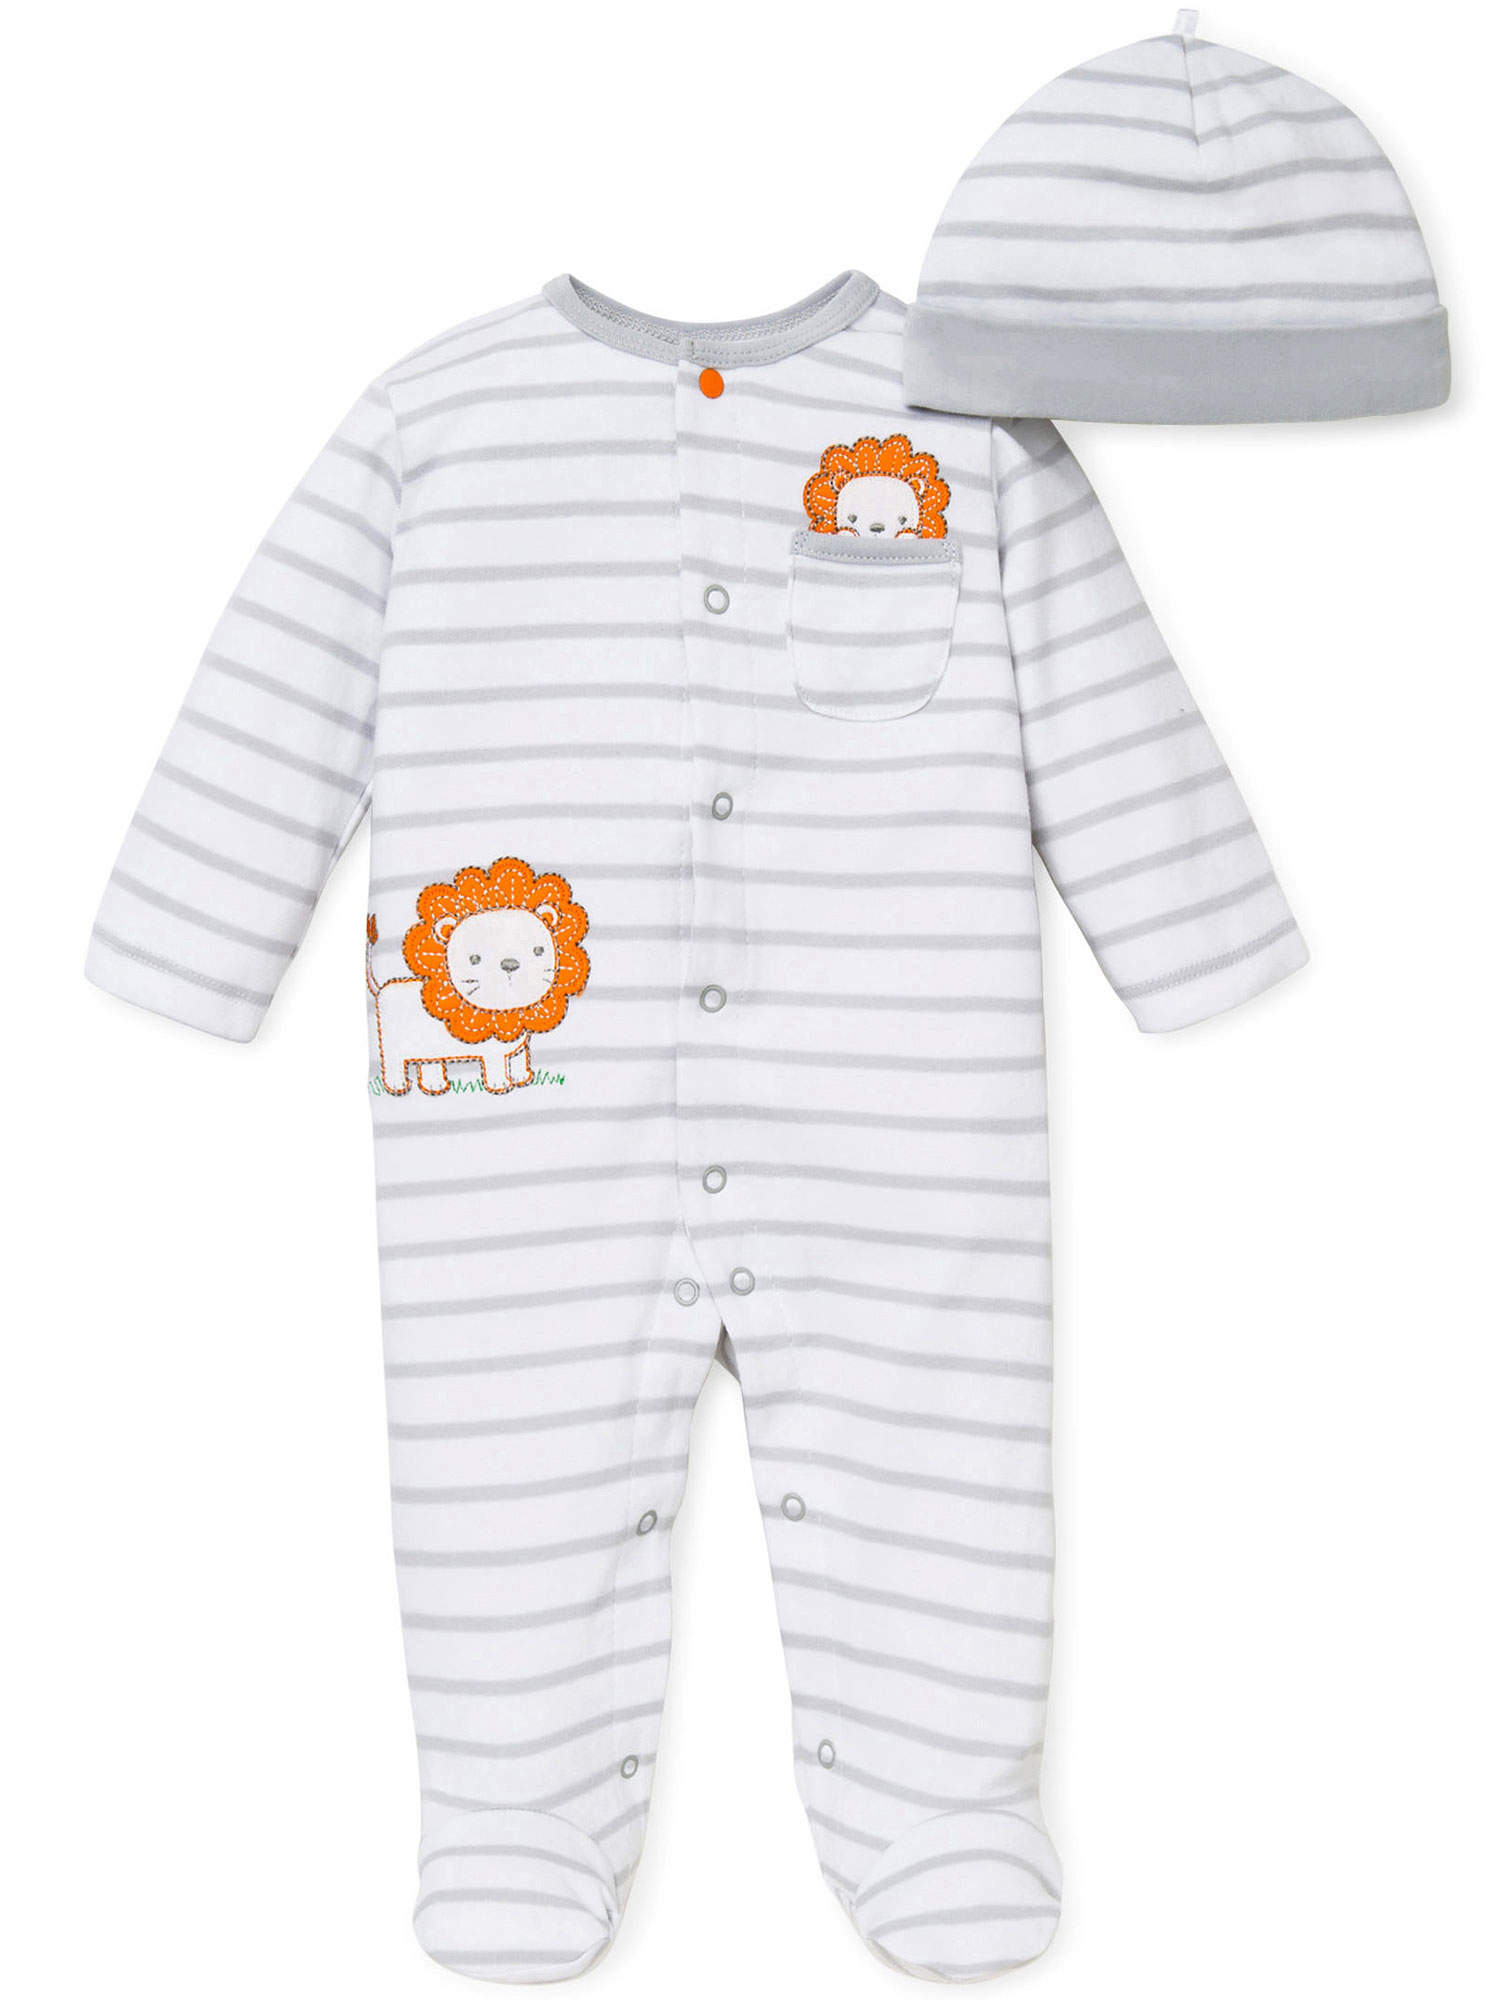 Little Lion Grey and White Striped Snap Front Footie Pajamas with Hat For Baby Boys Sleep N Play One Piece Romper Coverall Cotton Infant Footed Sleeper; Pijamas Para Bebes- White and Gray - Newborn